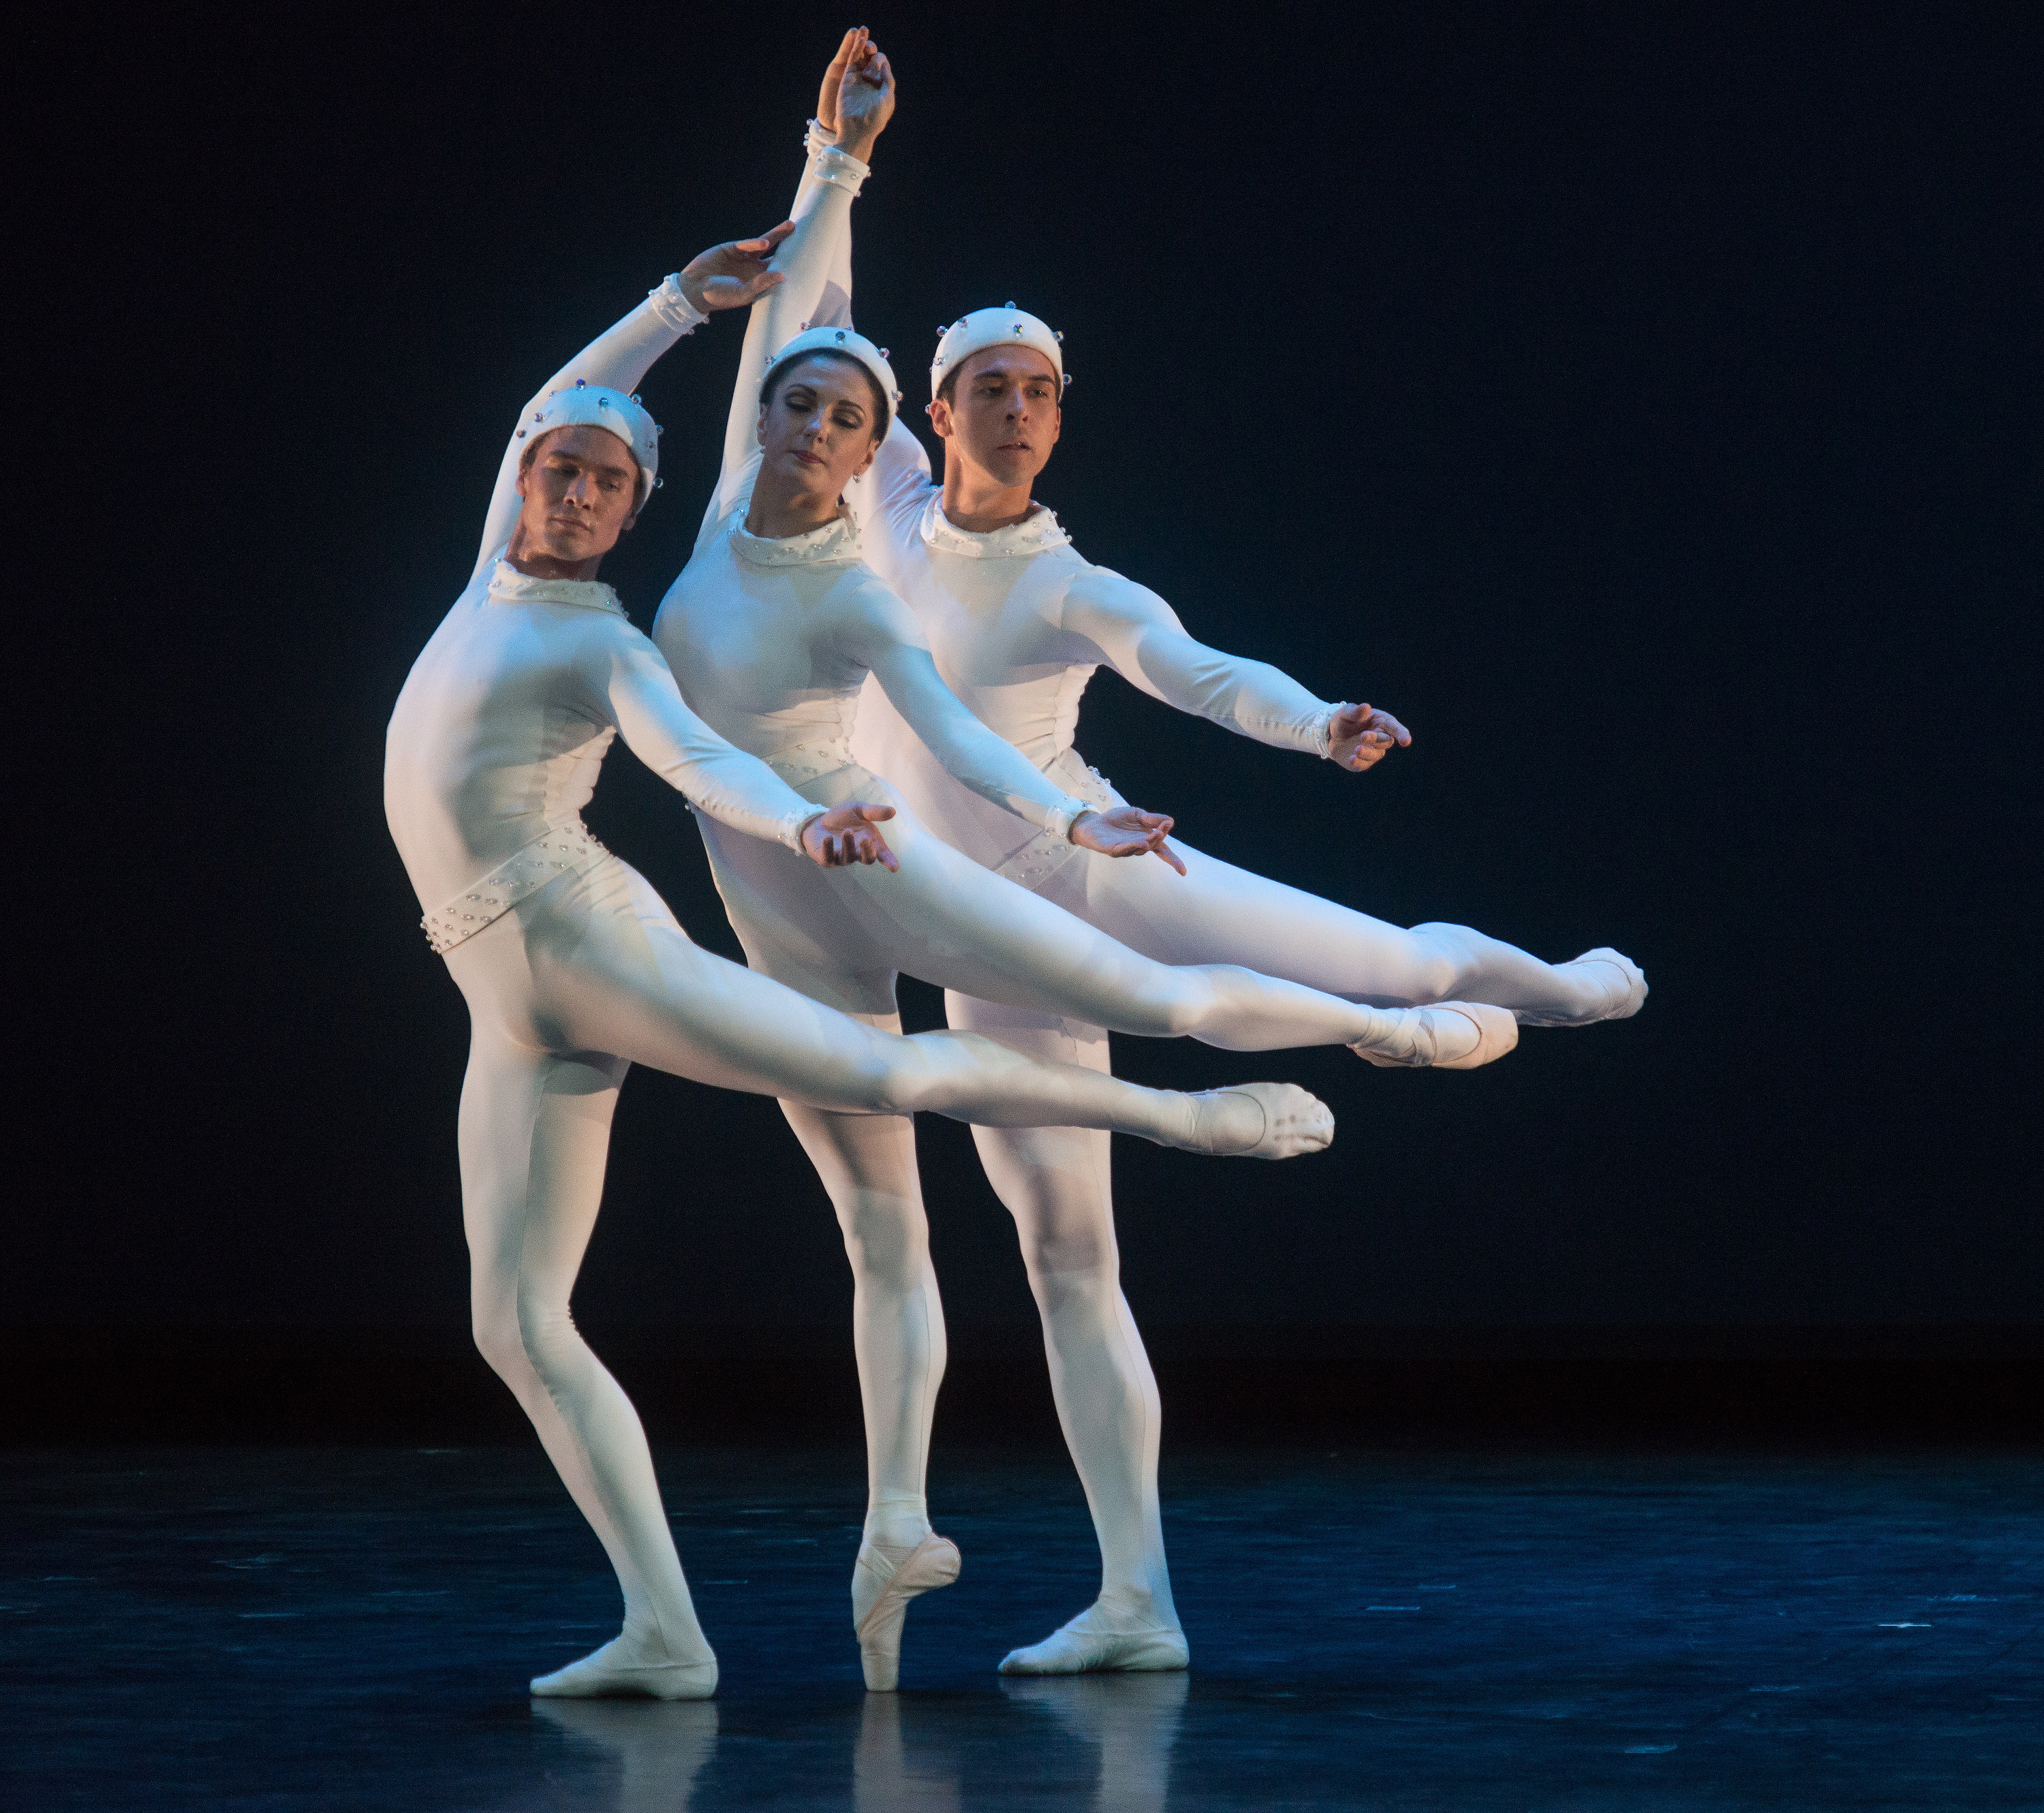 American Ballet Theatre, Monotones II, Frederick Ashton with Veronica Part, Thomas Forster, and Cory Sterns, perform at Fall for Dance Opening Night at City Center on September 26, 2106. Photo Credit: